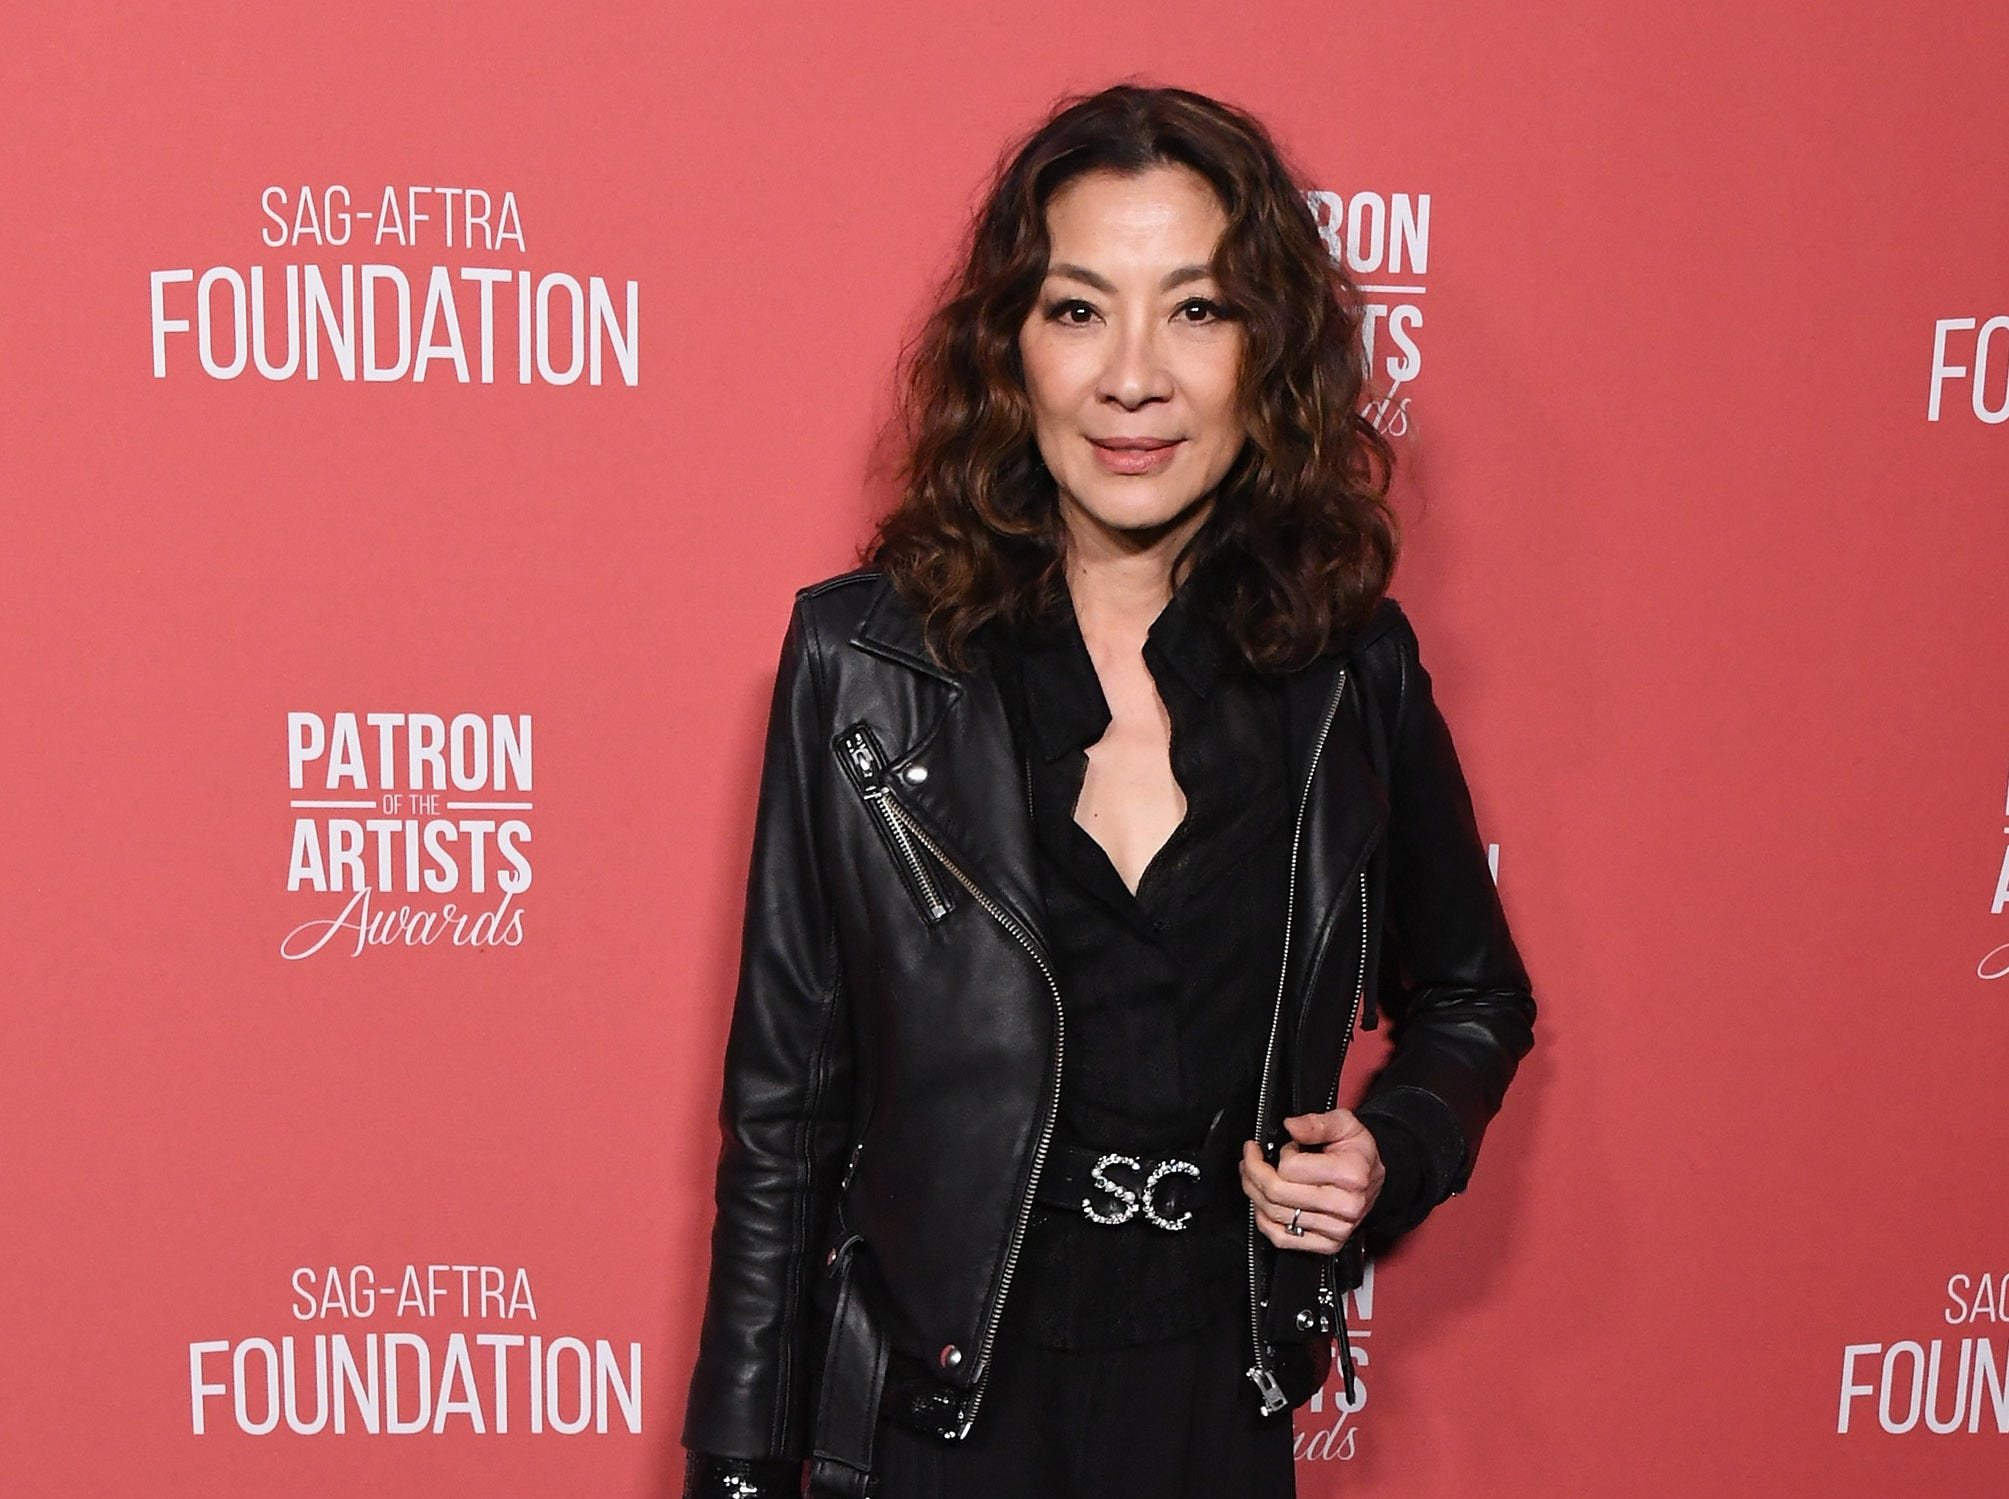 BEVERLY HILLS, CA - NOVEMBER 08:  Michelle Yeoh attends SAG-AFTRA Foundation's 3rd Annual Patron Of The Artists Awards at Wallis Annenberg Center for the Performing Arts on November 8, 2018 in Beverly Hills, California.  (Photo by Jon Kopaloff/FilmMagic) ORG XMIT: 775233471 ORIG FILE ID: 1059469170